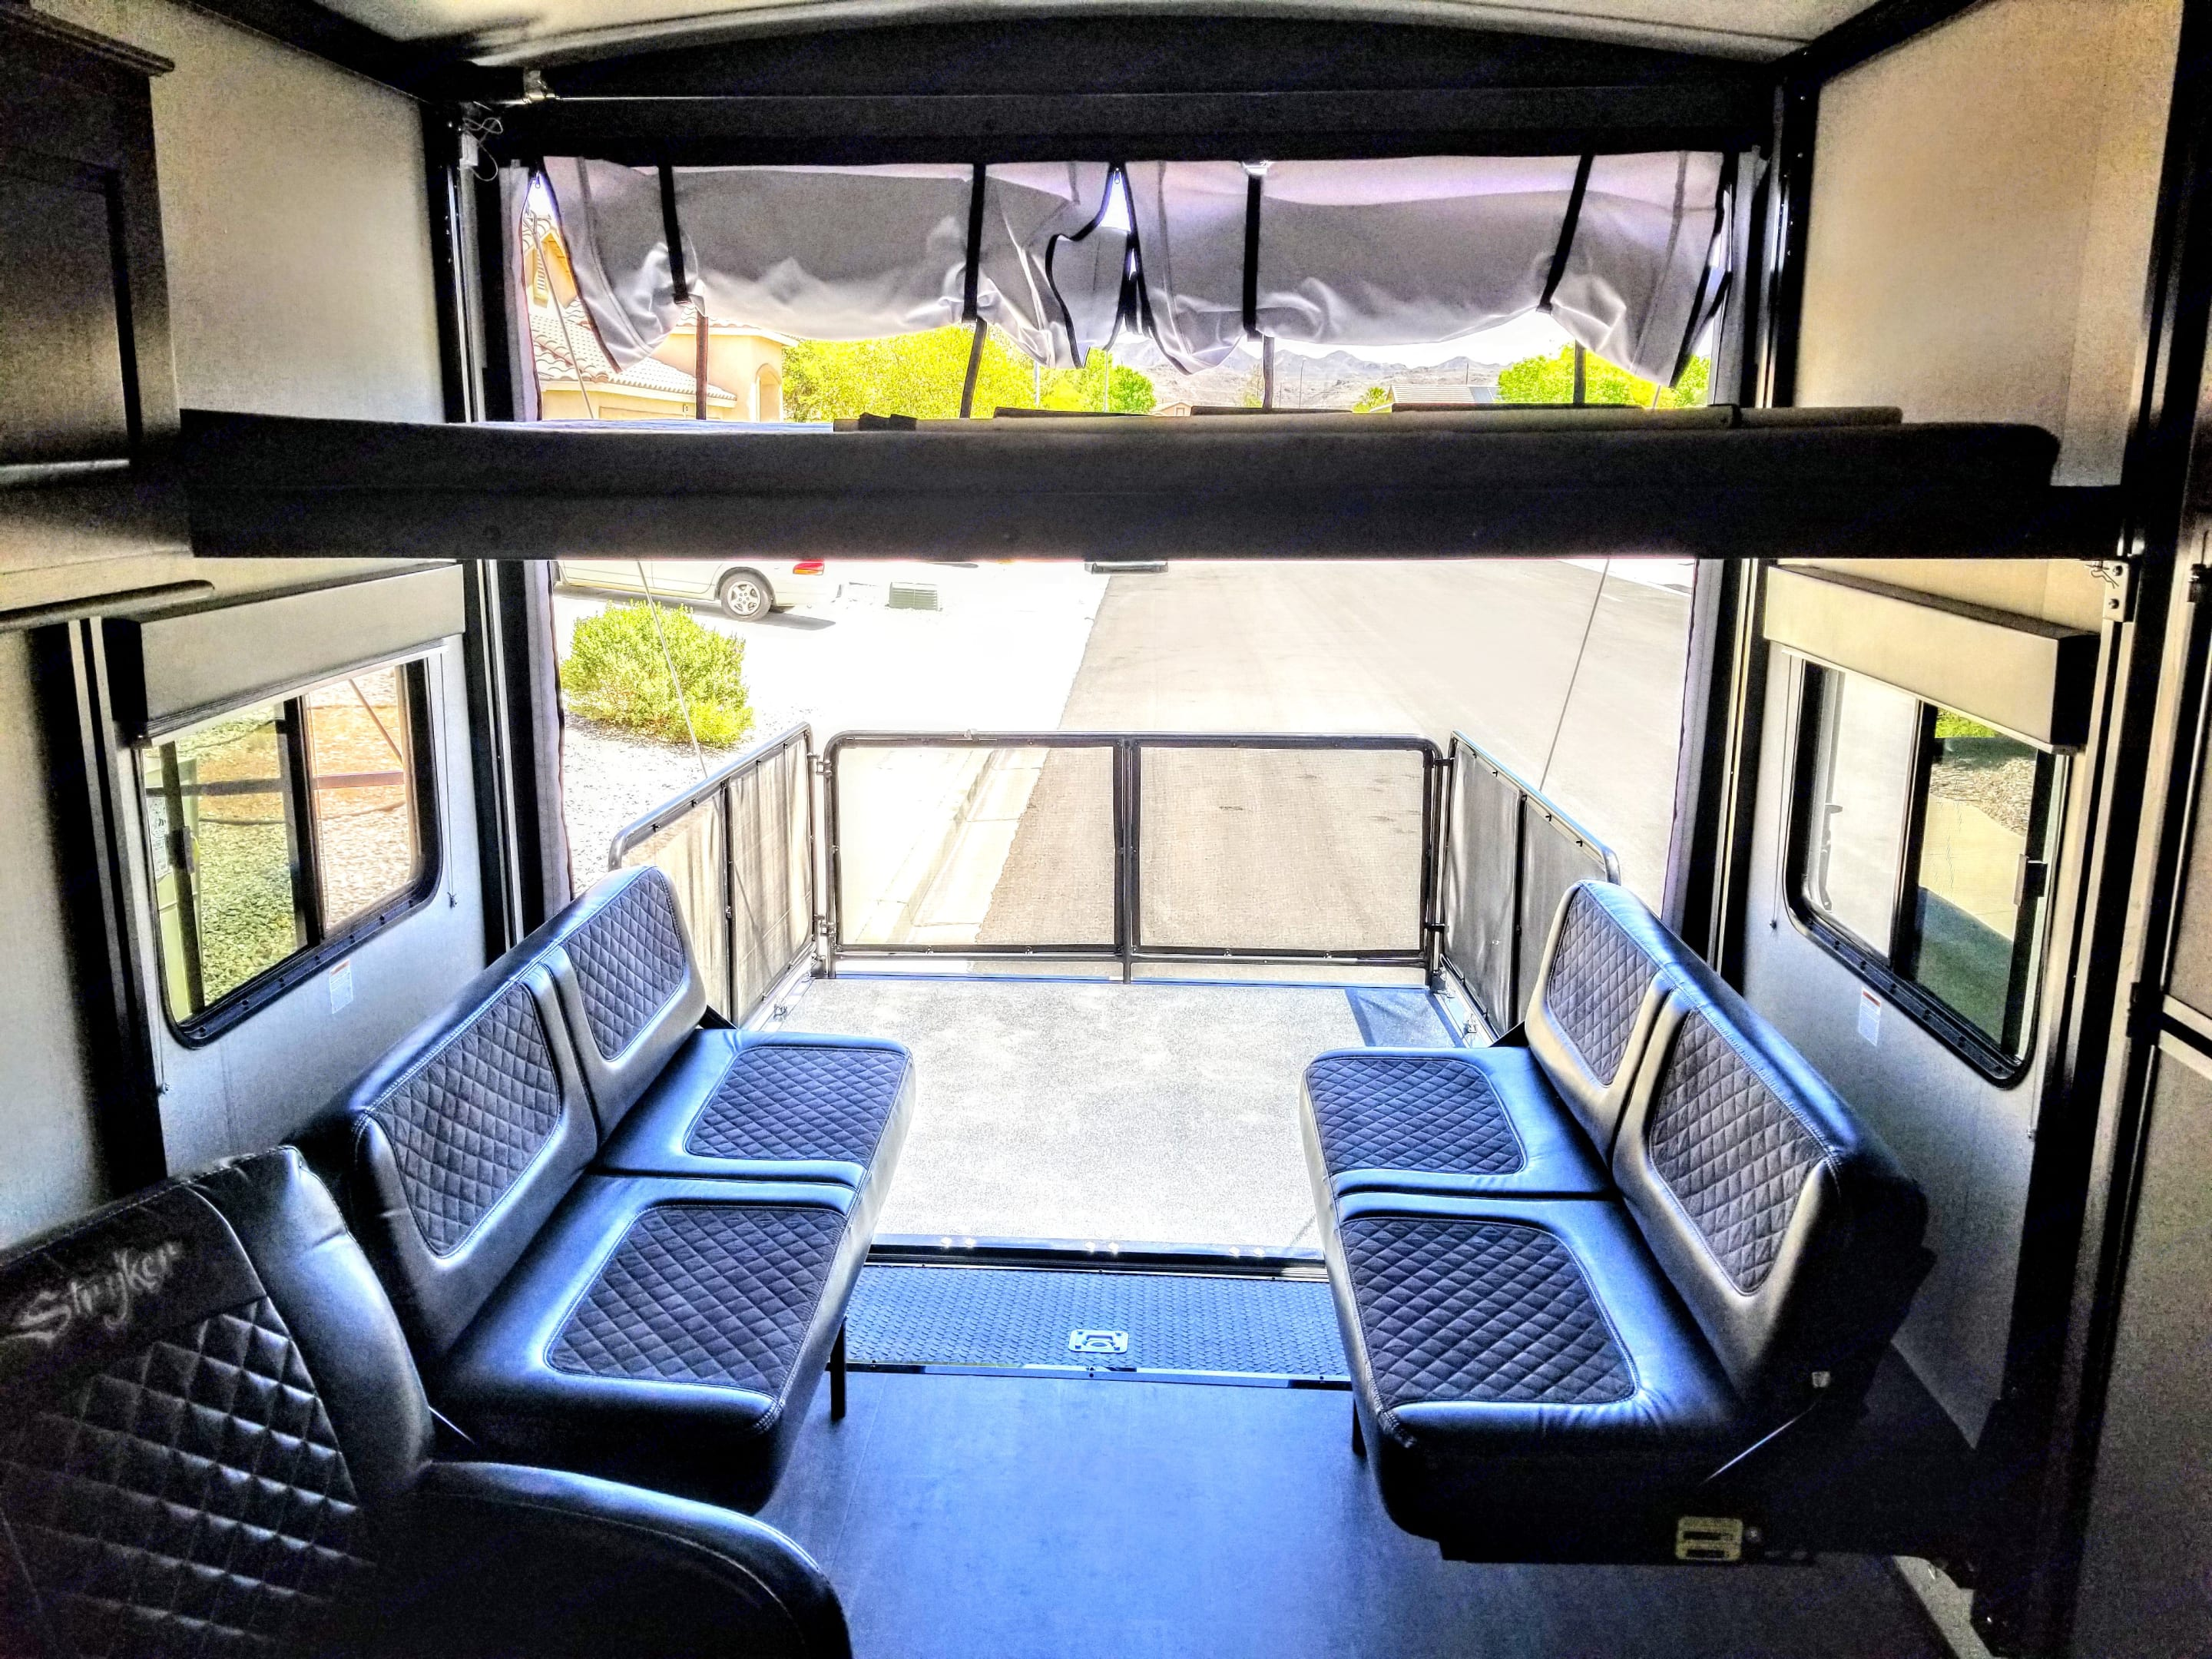 View from inside looking out at the gated patio. . Cruiser Rv Corp Stryker 2613 2019